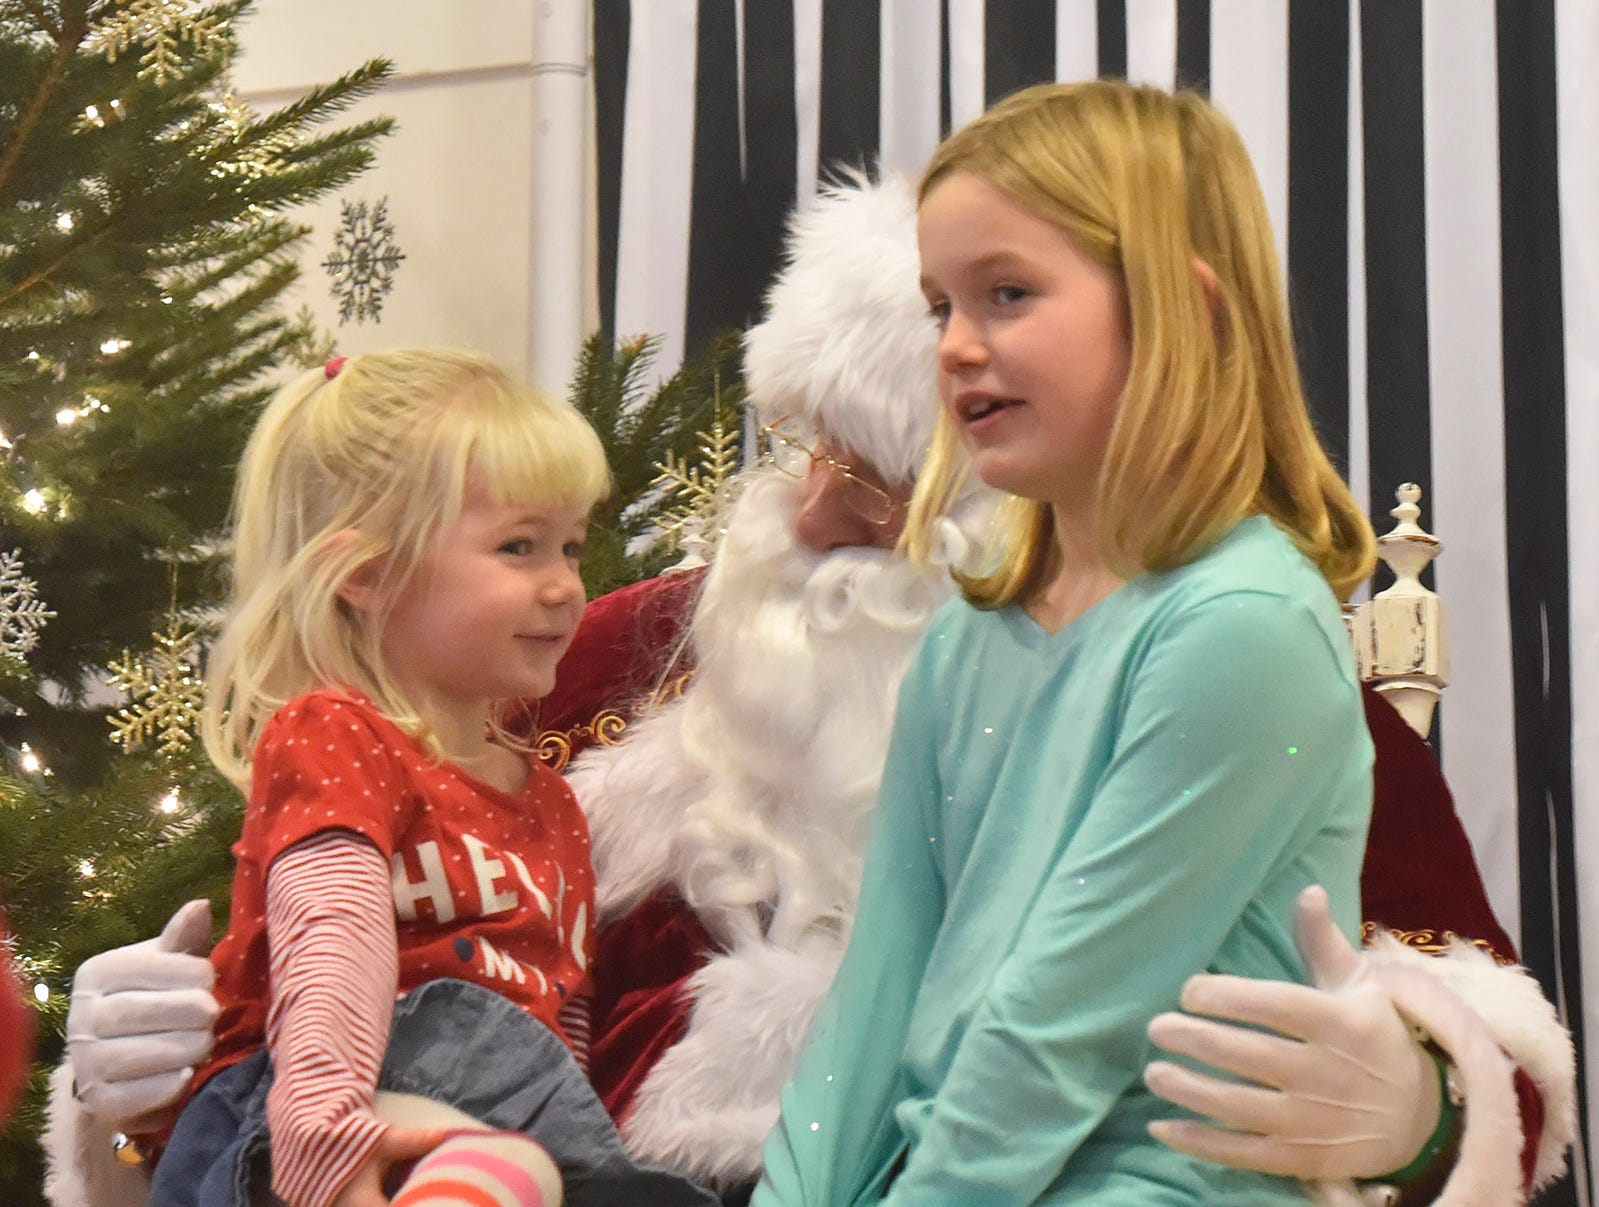 Emma and Natalie Nelson of Madison talk to Santa during Christmas in the Village in Ephraim on Saturday, Dec. 1, 2018. Tina M. Gohr/USA TODAY NETWORK-Wisconsin